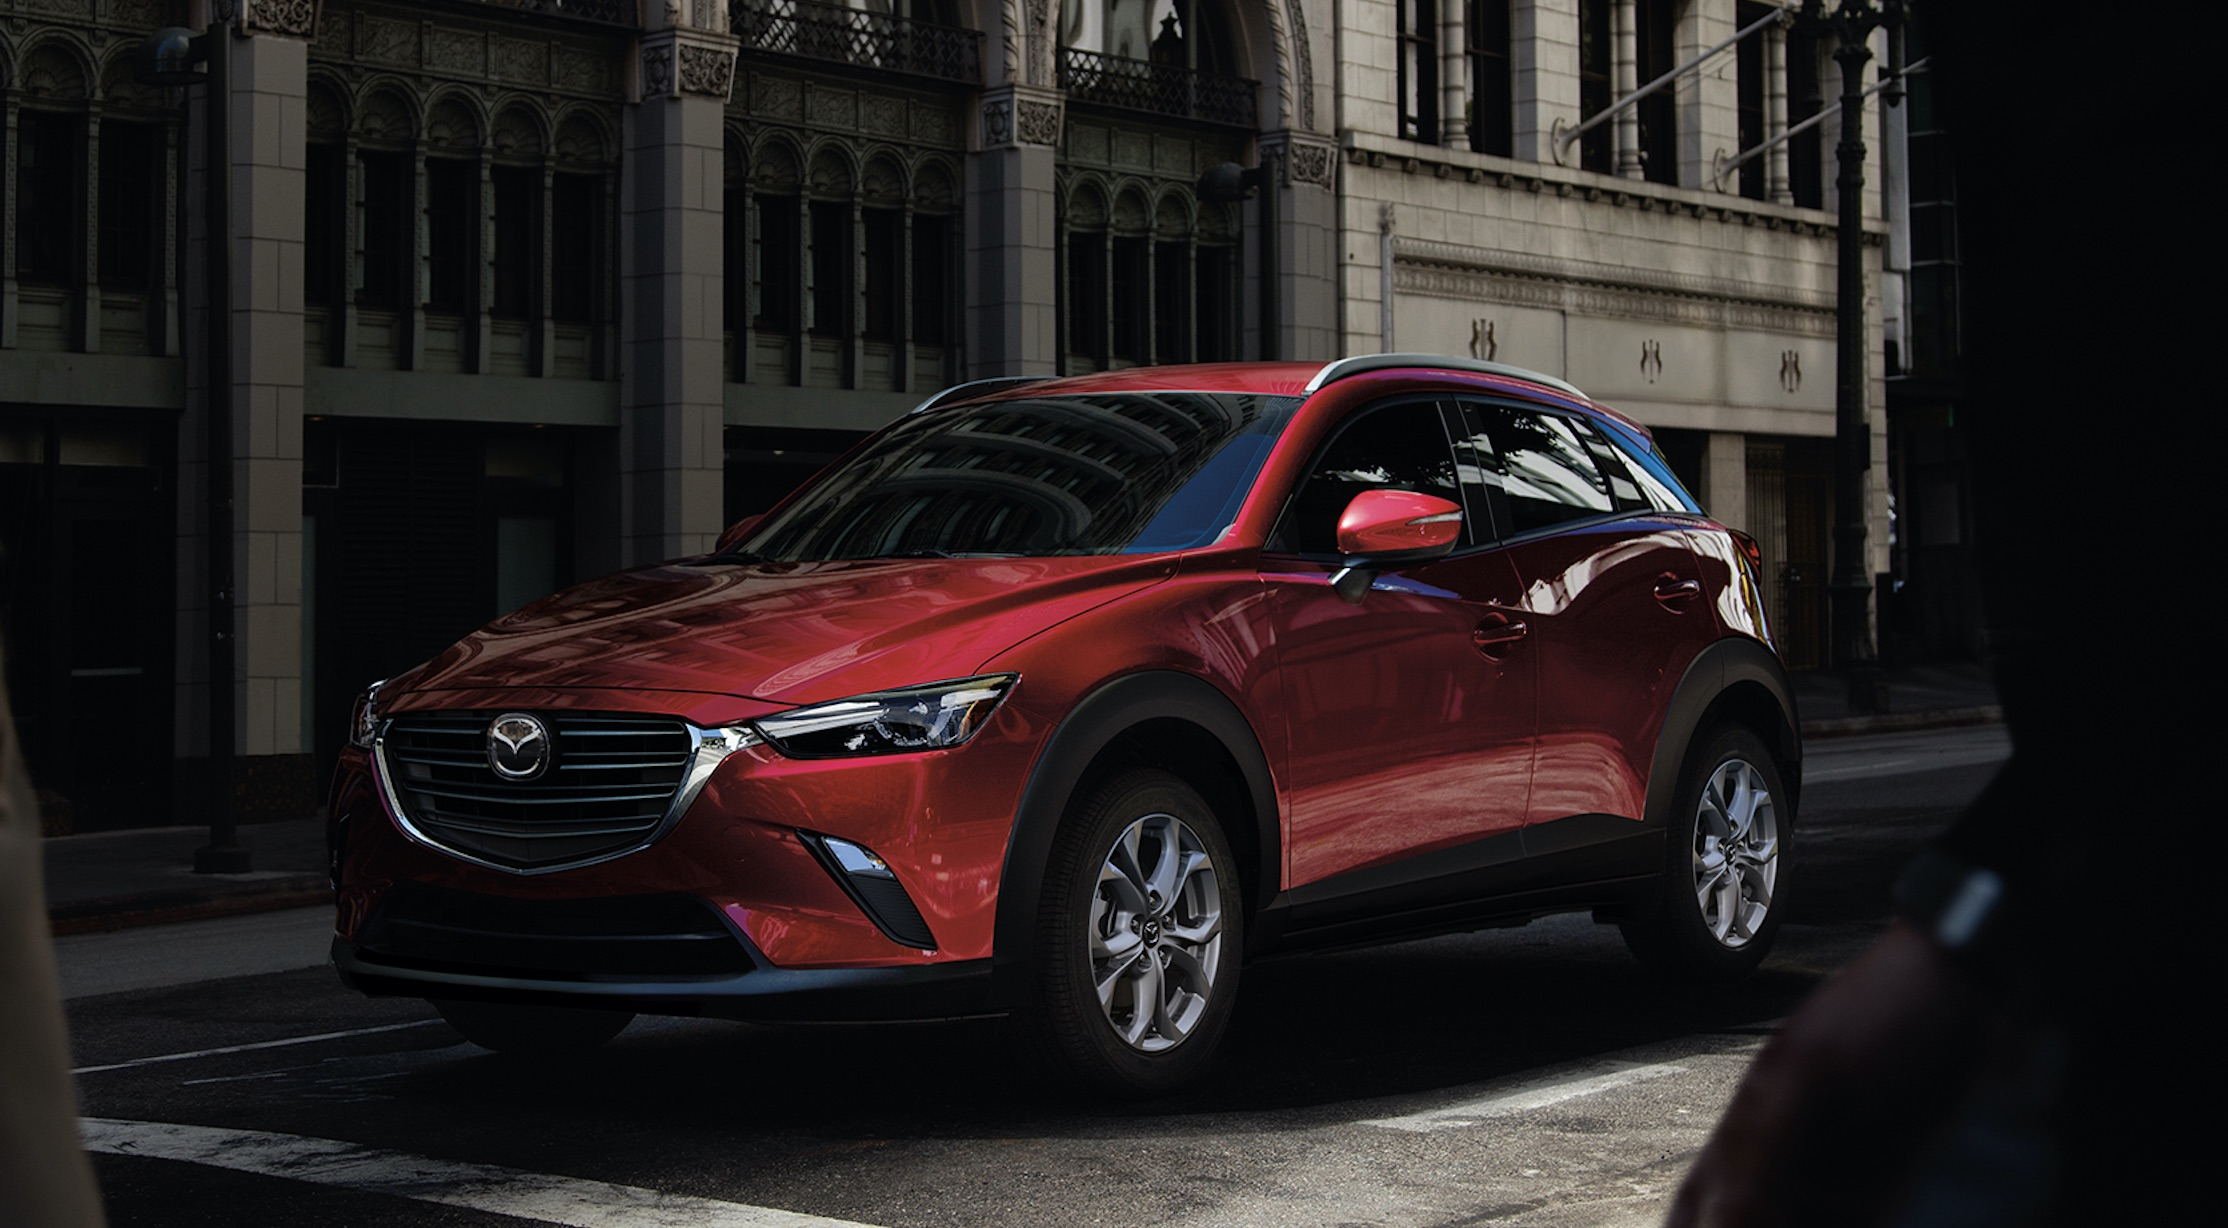 Red 2022 Mazda CX-3 parked on a city street